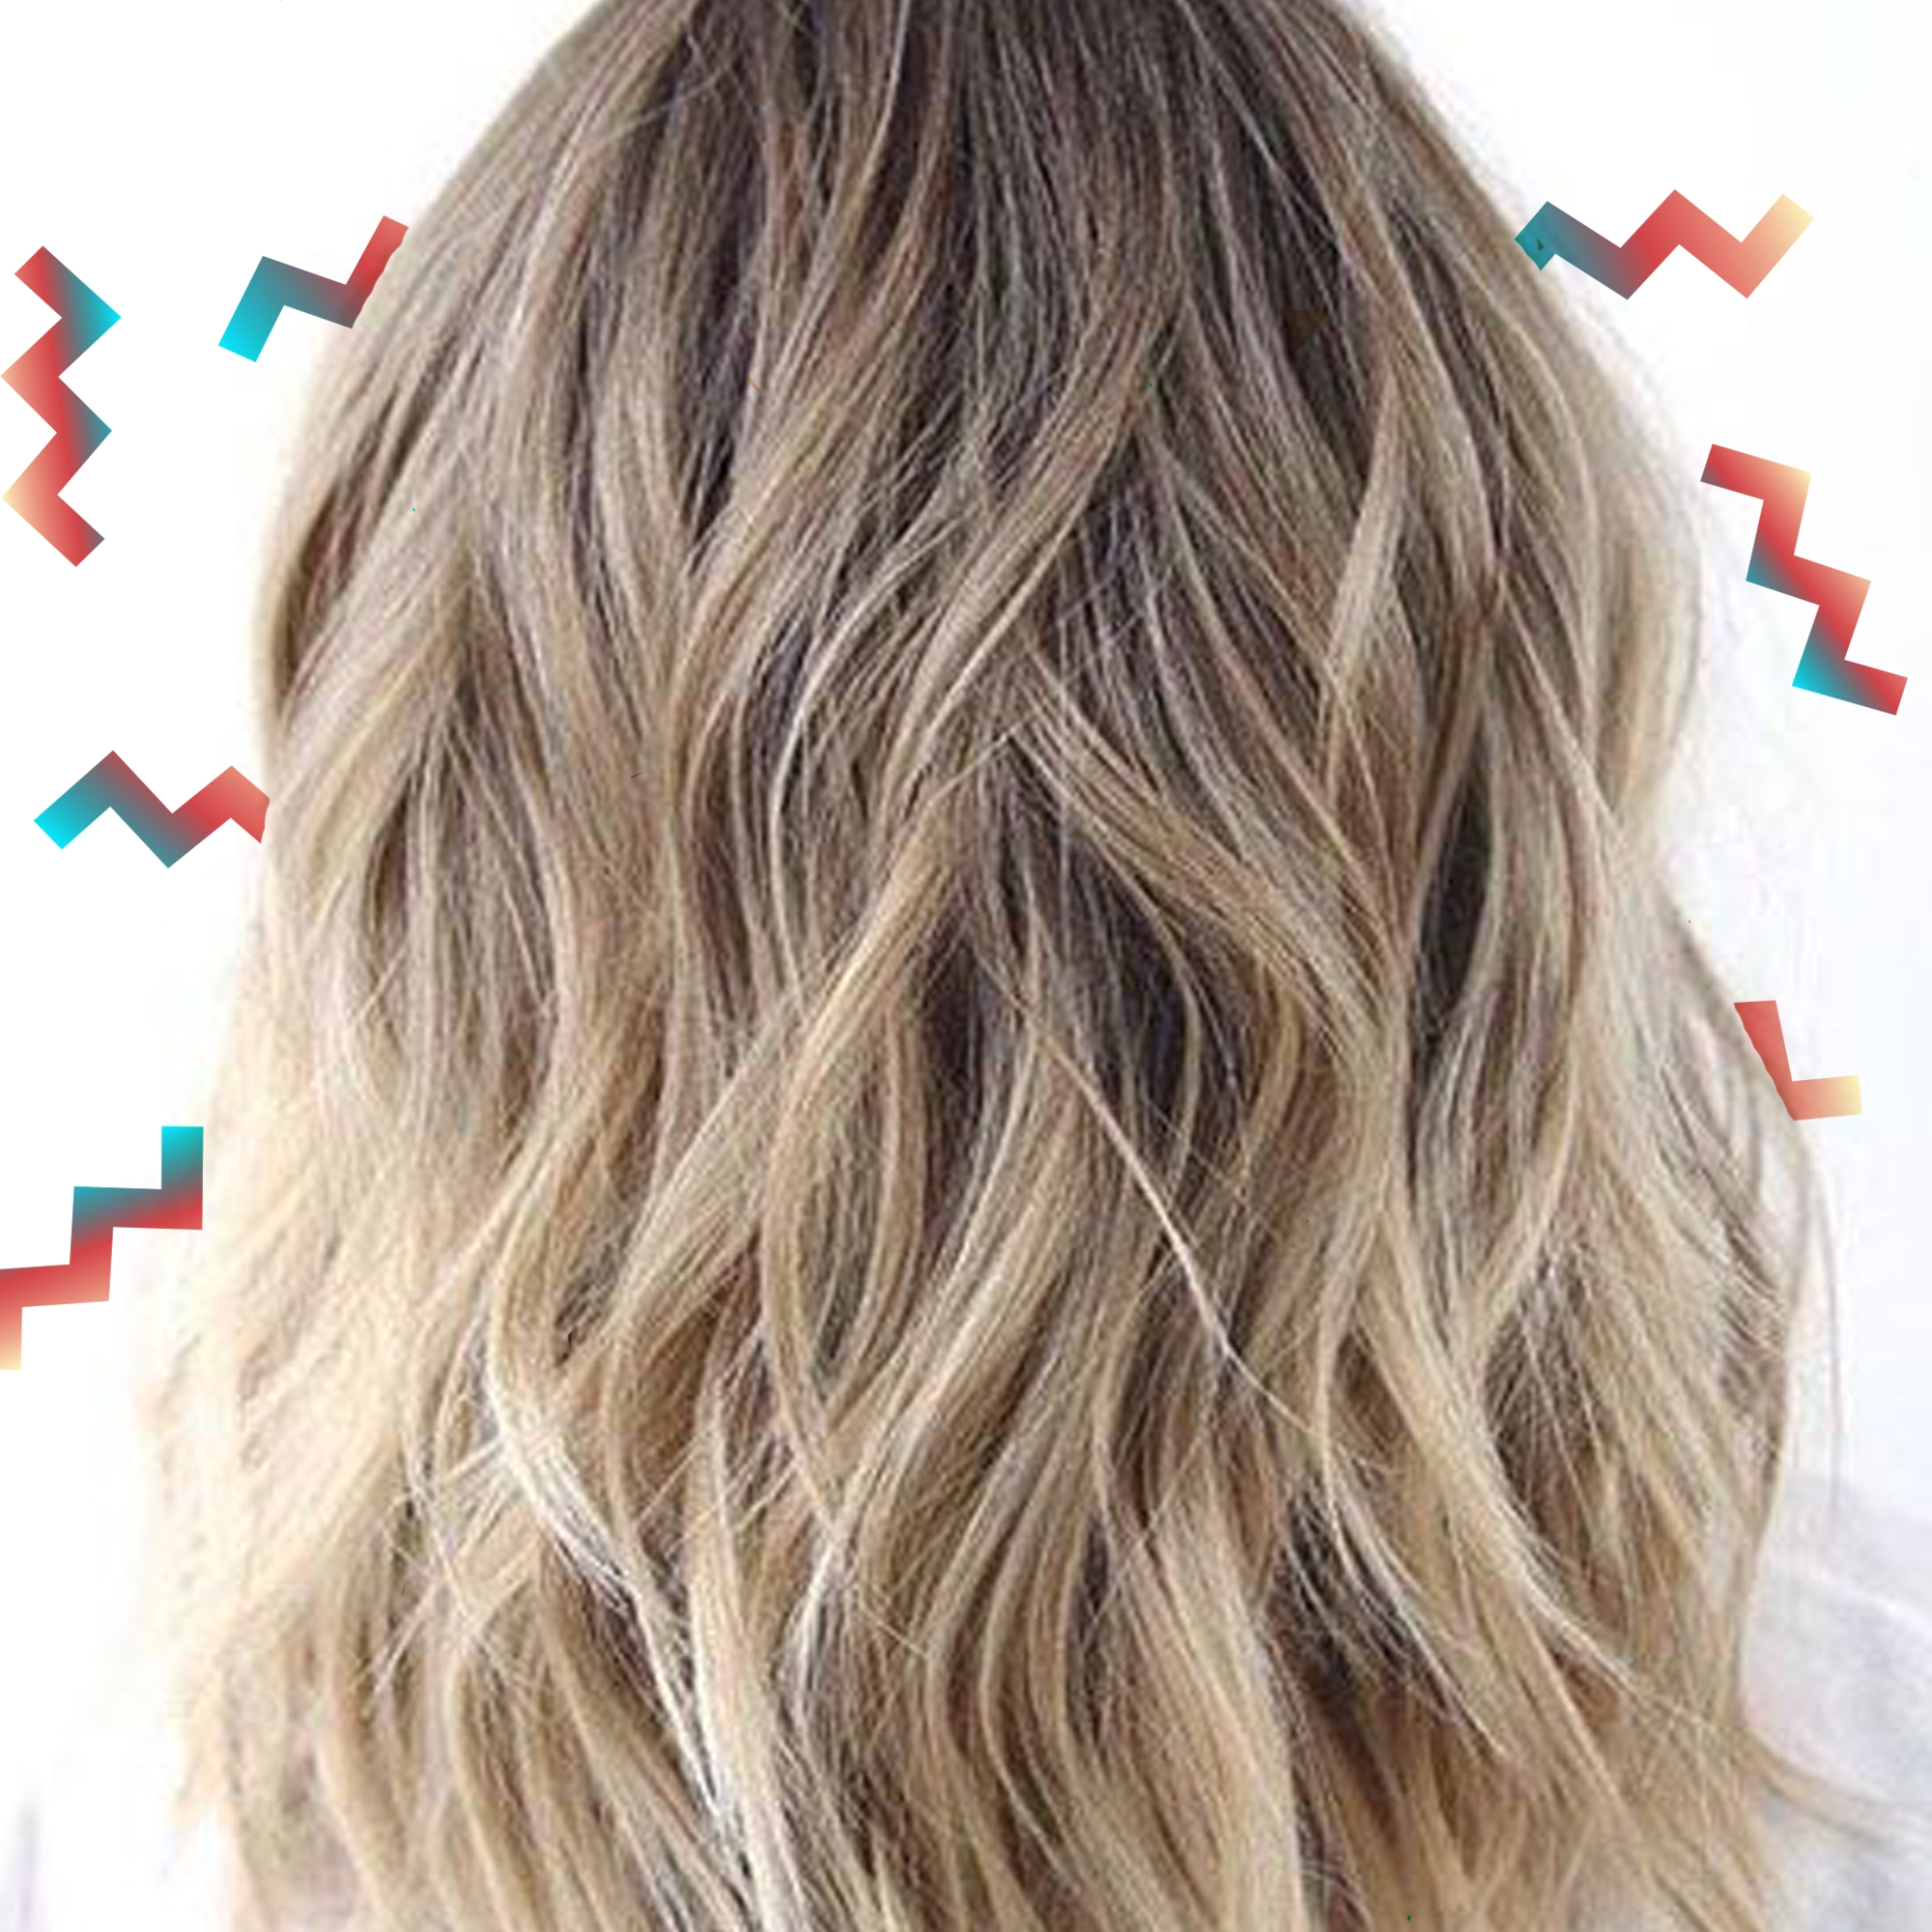 Hair Coloring Techniques – Color Trends New Terminology For Most Recently Released Icy Highlights And Loose Curls Blonde Hairstyles (View 8 of 20)